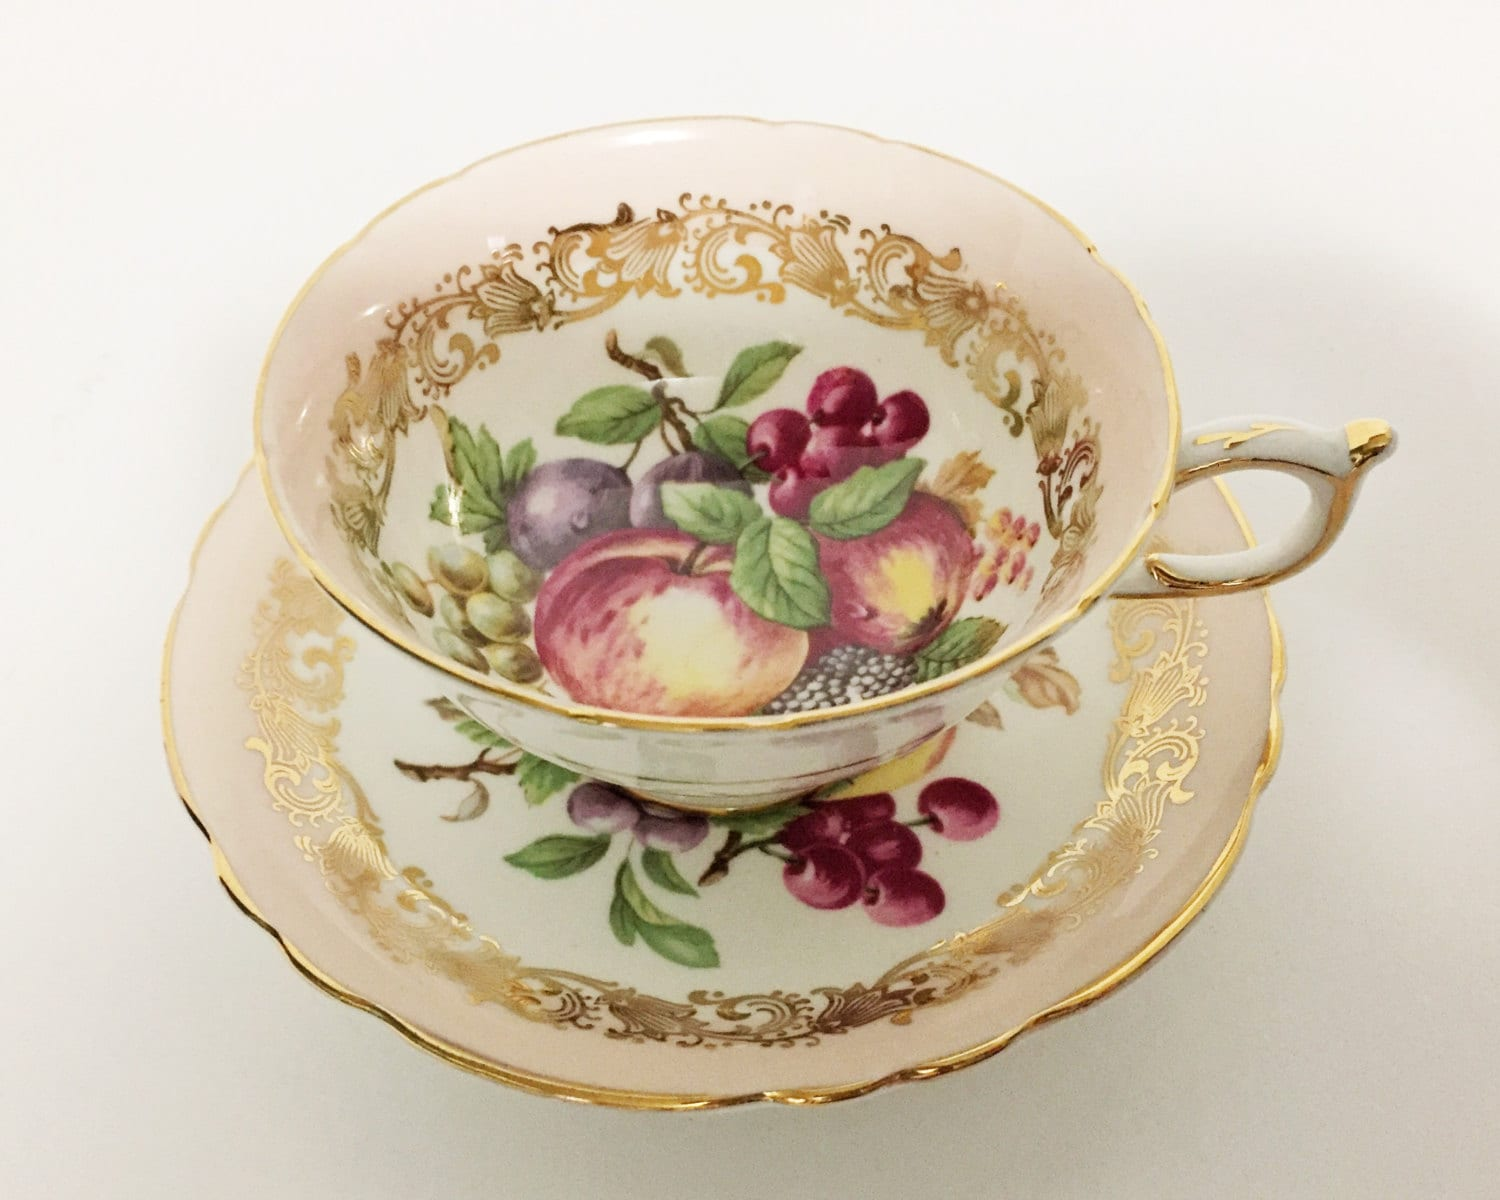 Beautiful Teacup and Saucer with Harvest Fruit from Paragon China